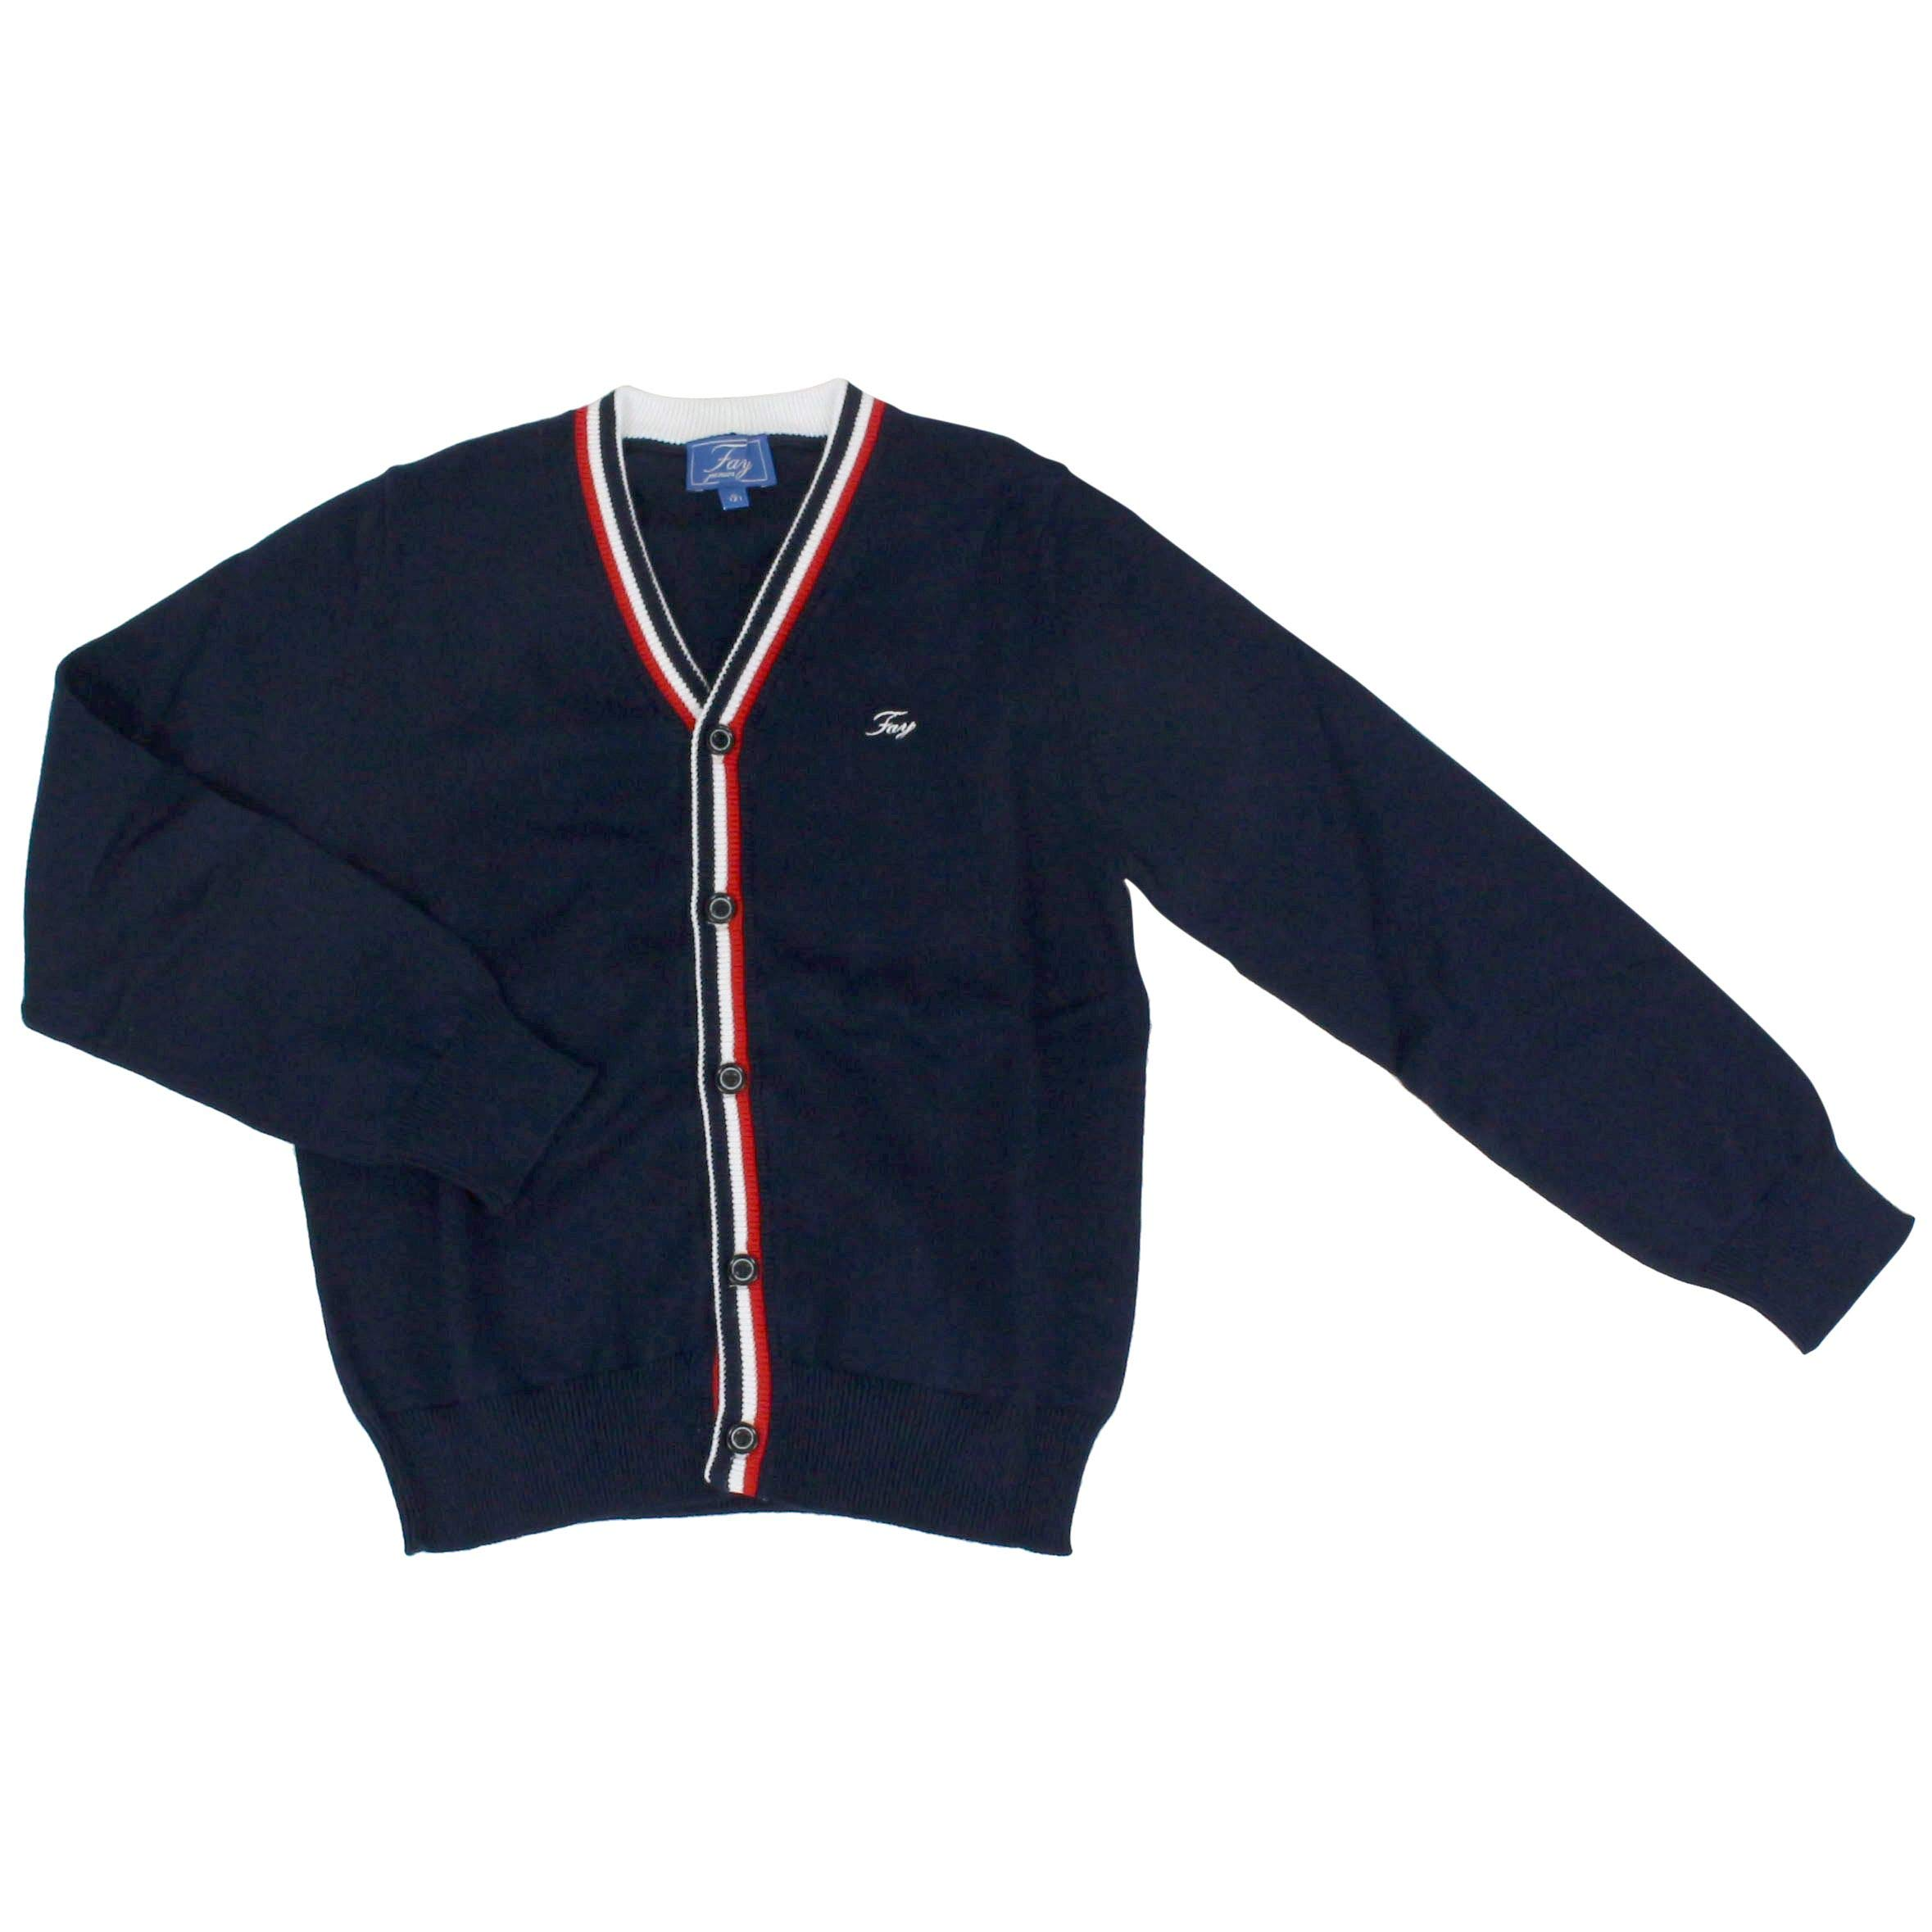 fay Boys Nnhc1387500qvtu807 Blue Cotton Cardigan